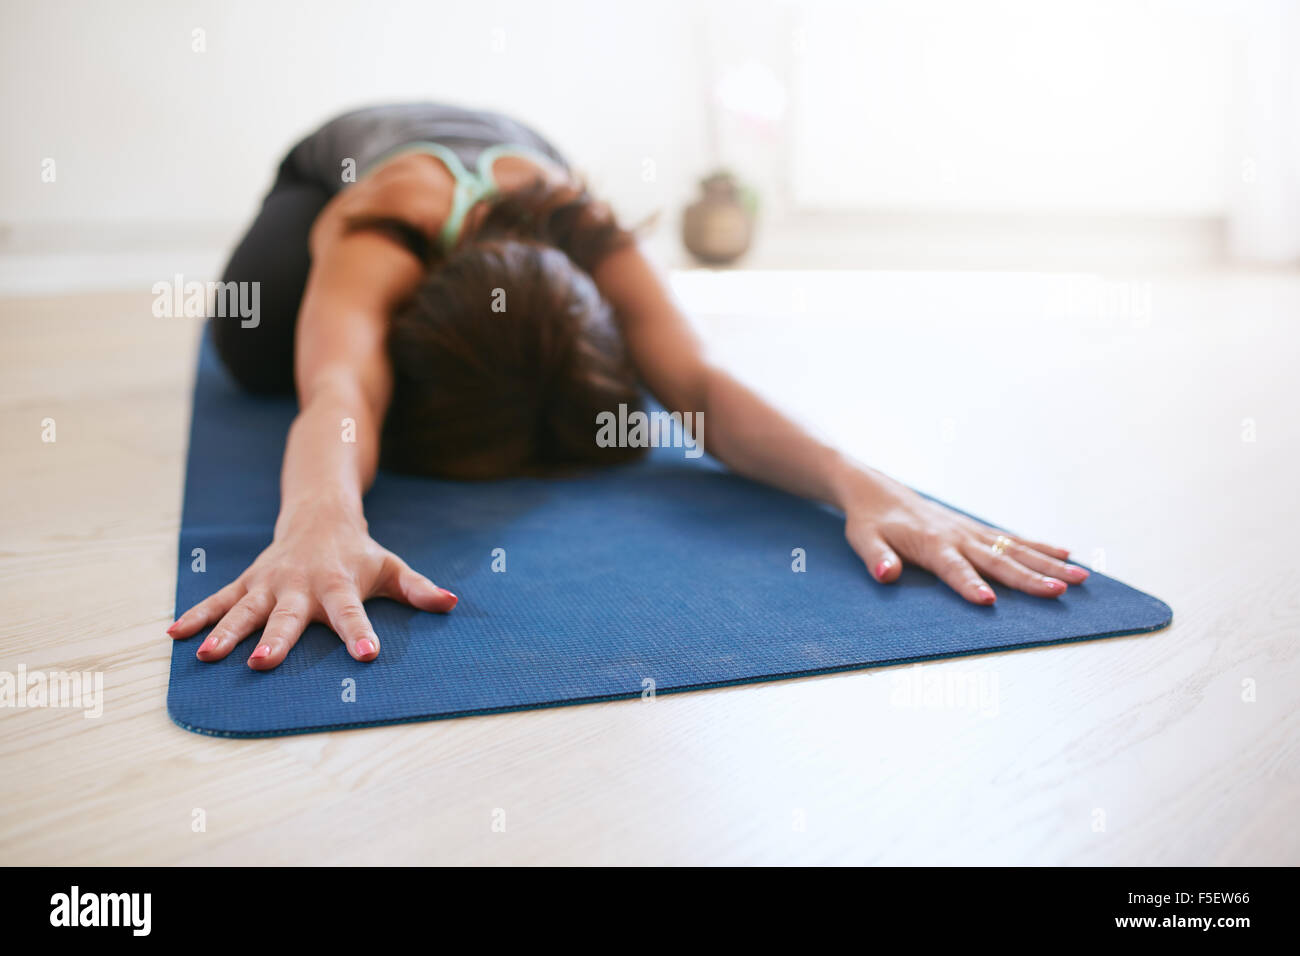 Woman doing stretching workout on fitness mat. Fit female performing yoga on exercise mat at gym. Child Pose, Balasana. Stock Photo